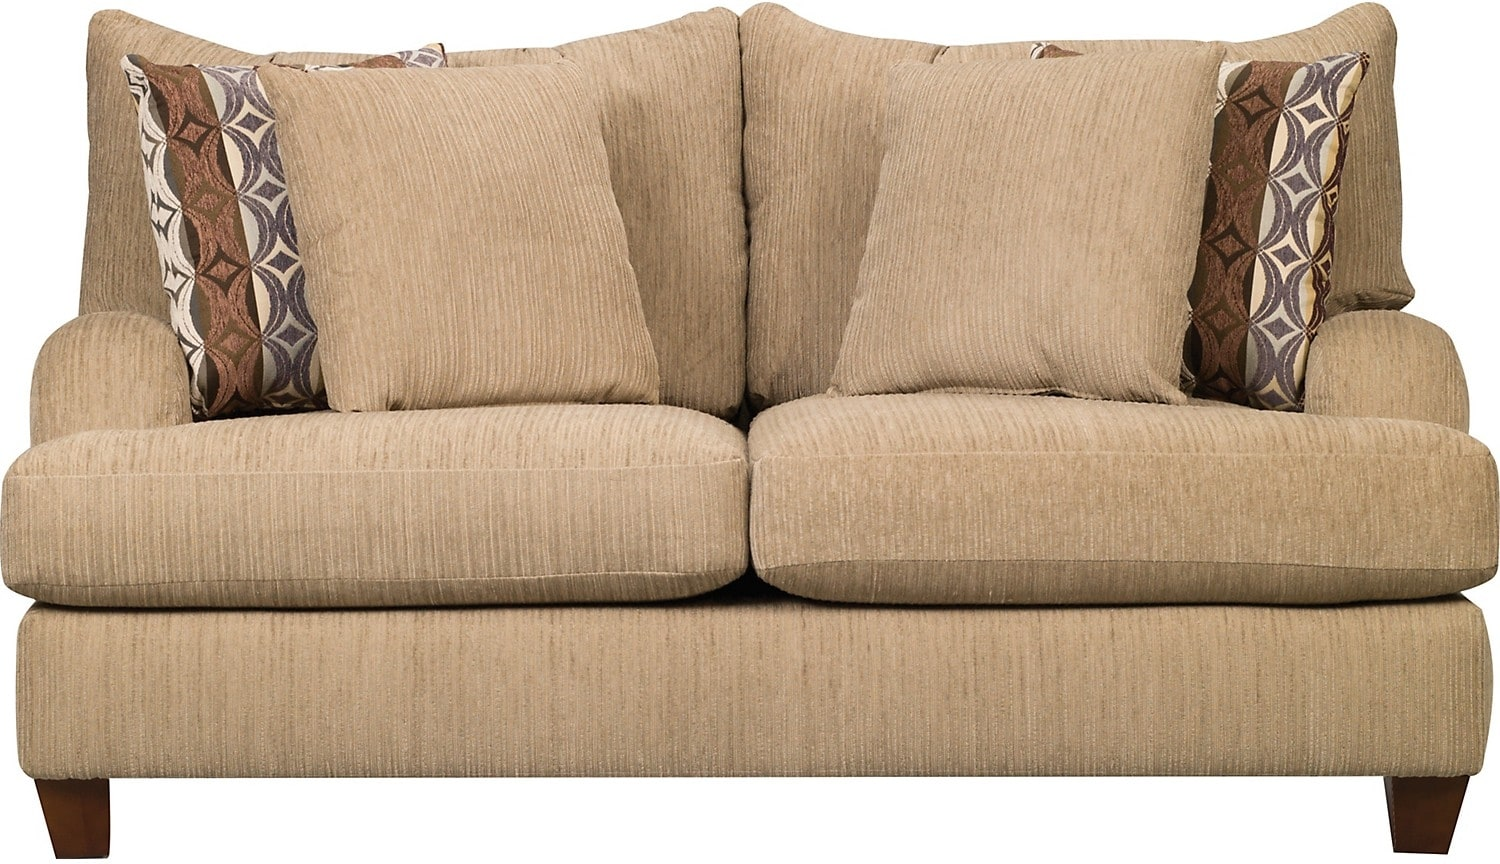 Living Room Furniture - Putty Chenille Loveseat - Beige